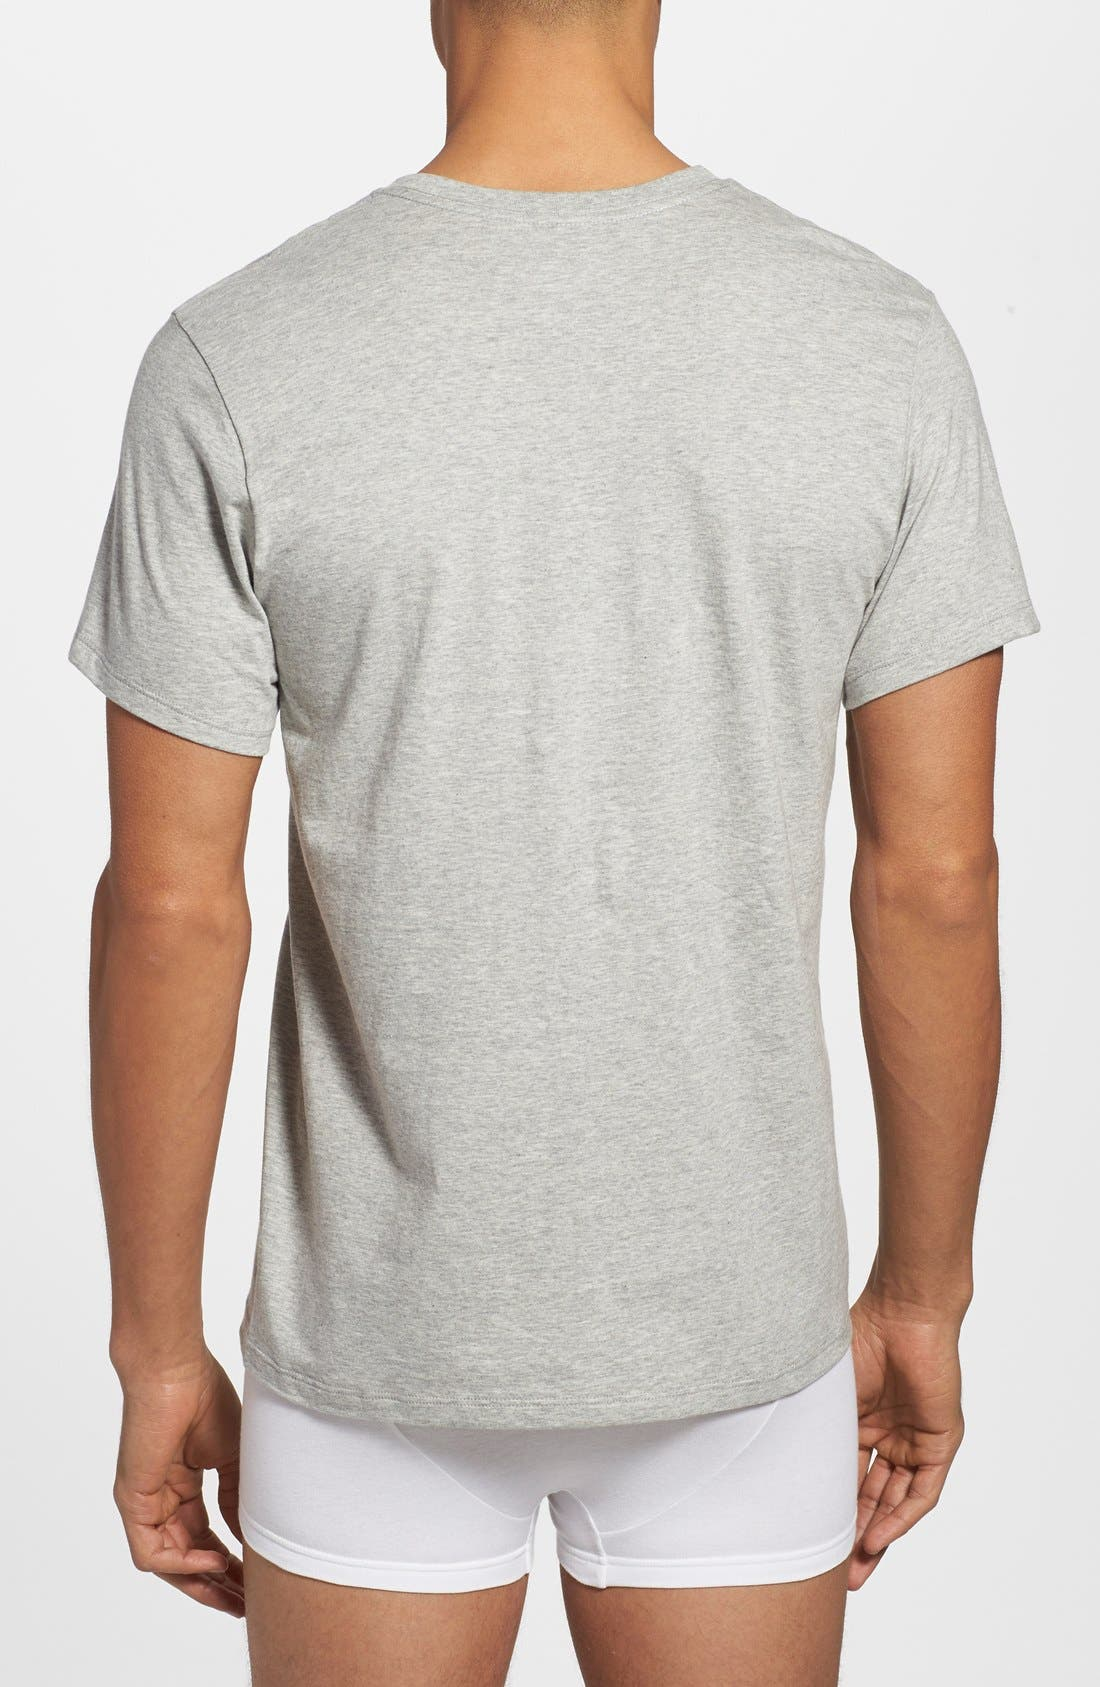 Alternate Image 3  - Calvin Klein Assorted 3-Pack Classic Fit Cotton V-Neck T-Shirt